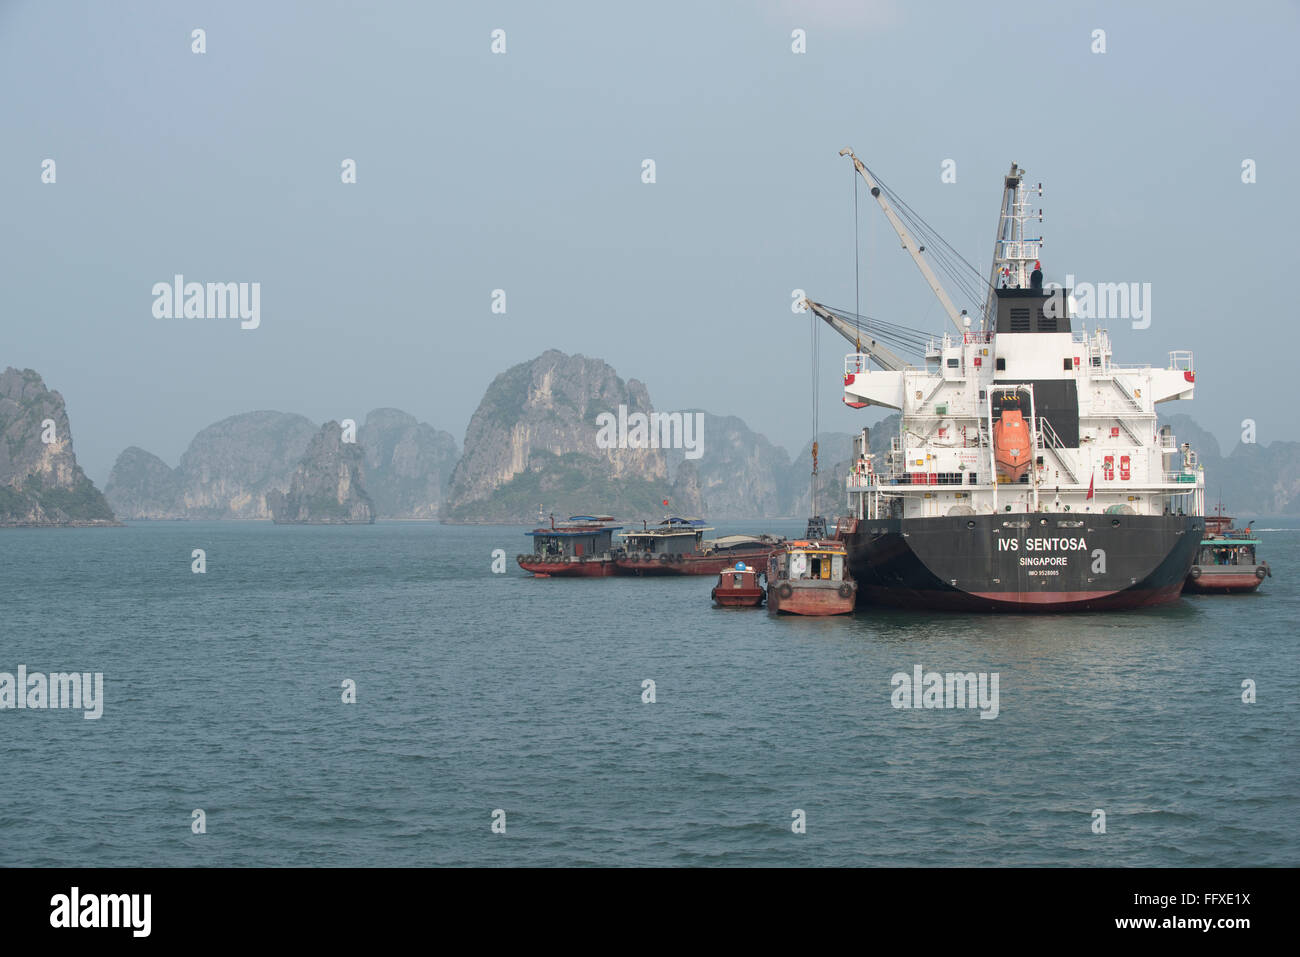 A supply ship from Singapore loading or unloading cargo from communities around Halong Bay, Vietnam - Stock Image